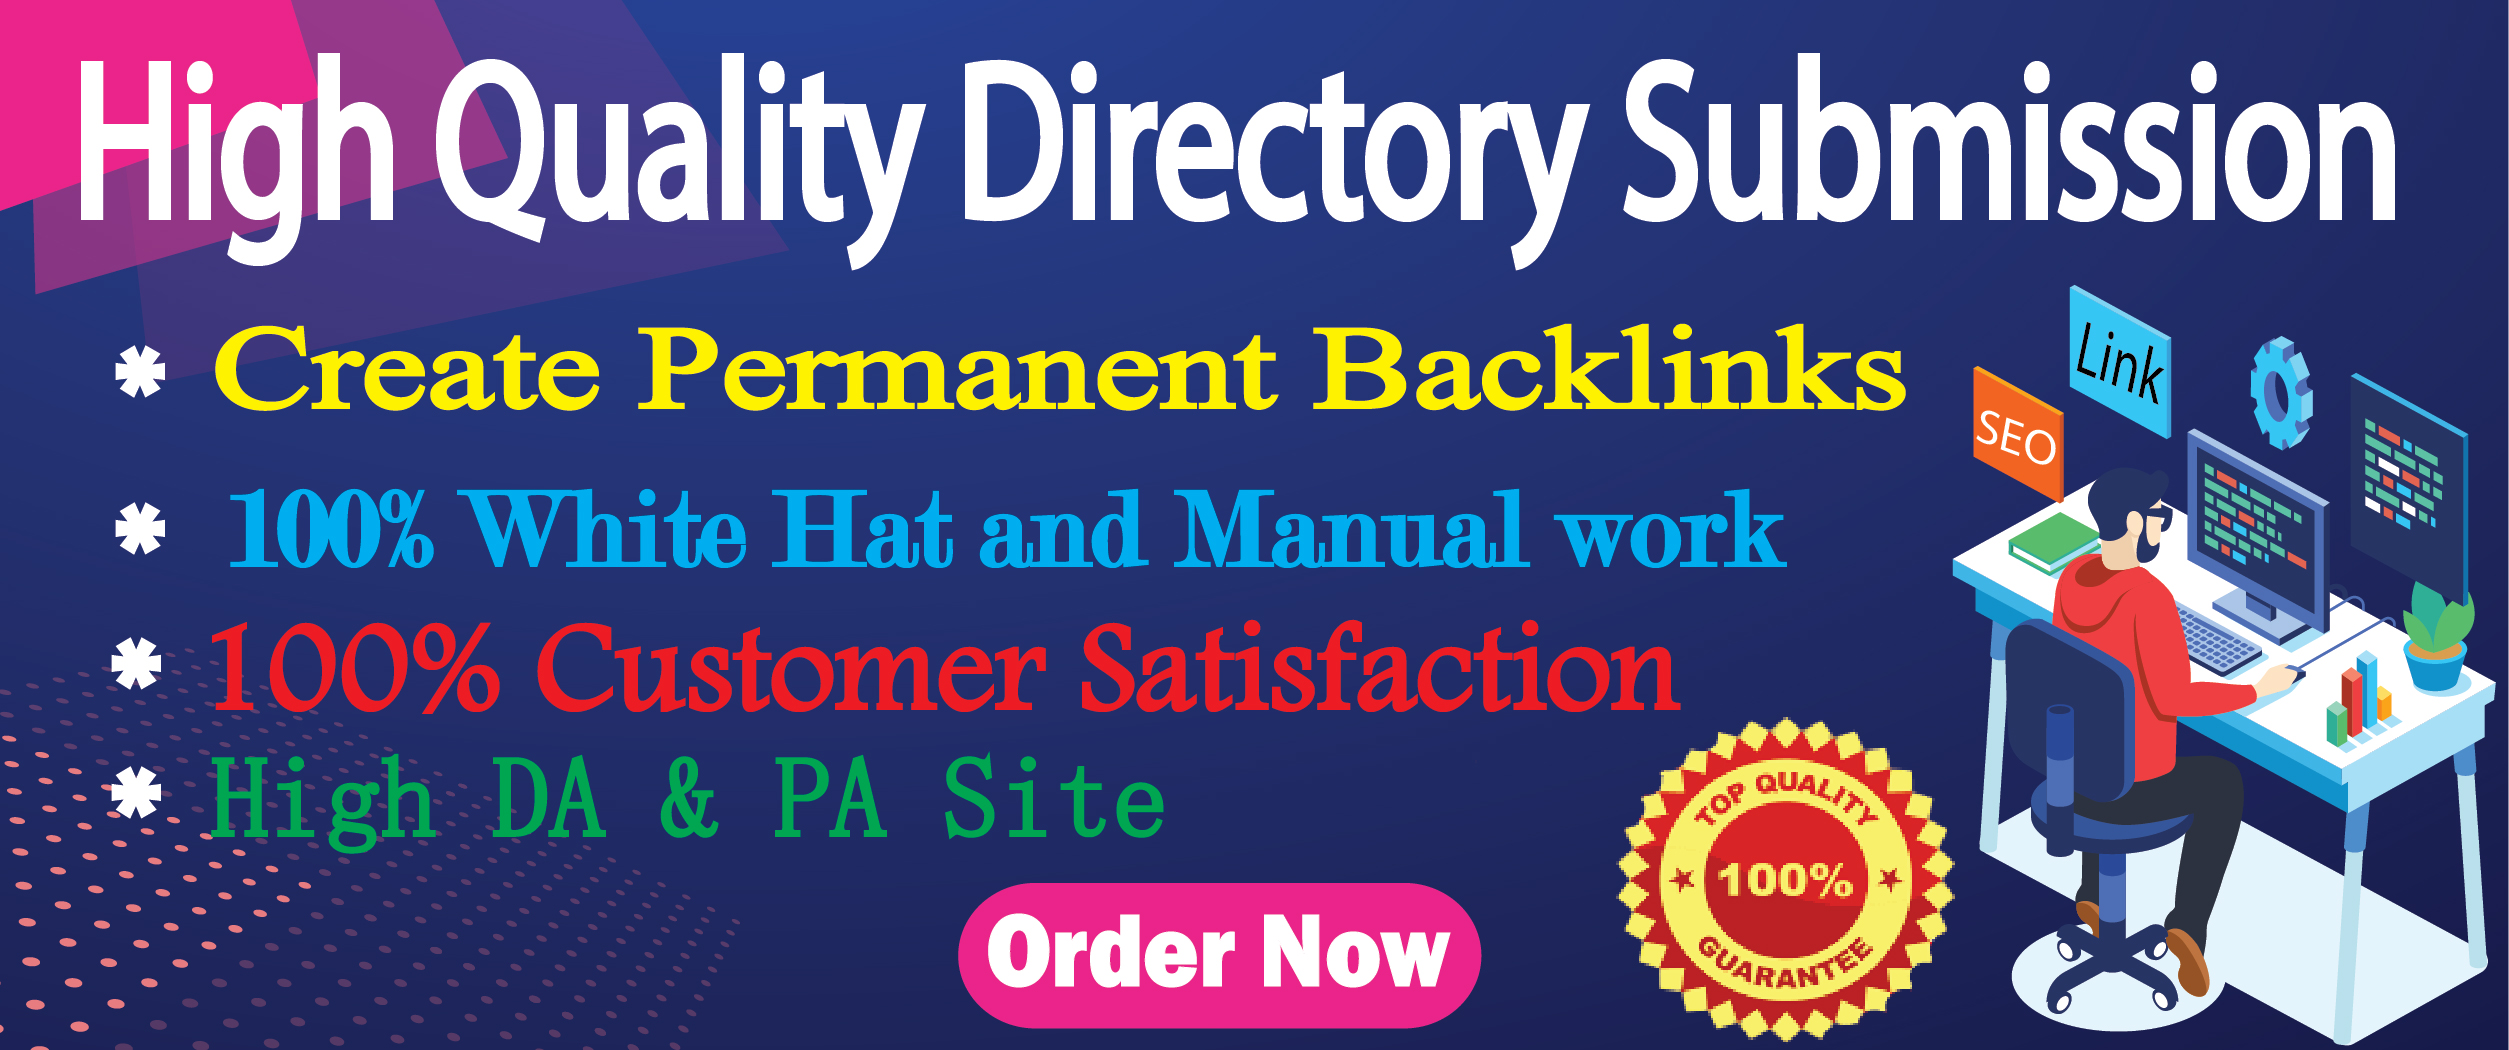 I will provide manually 50 Web High-Quality Directory Submission